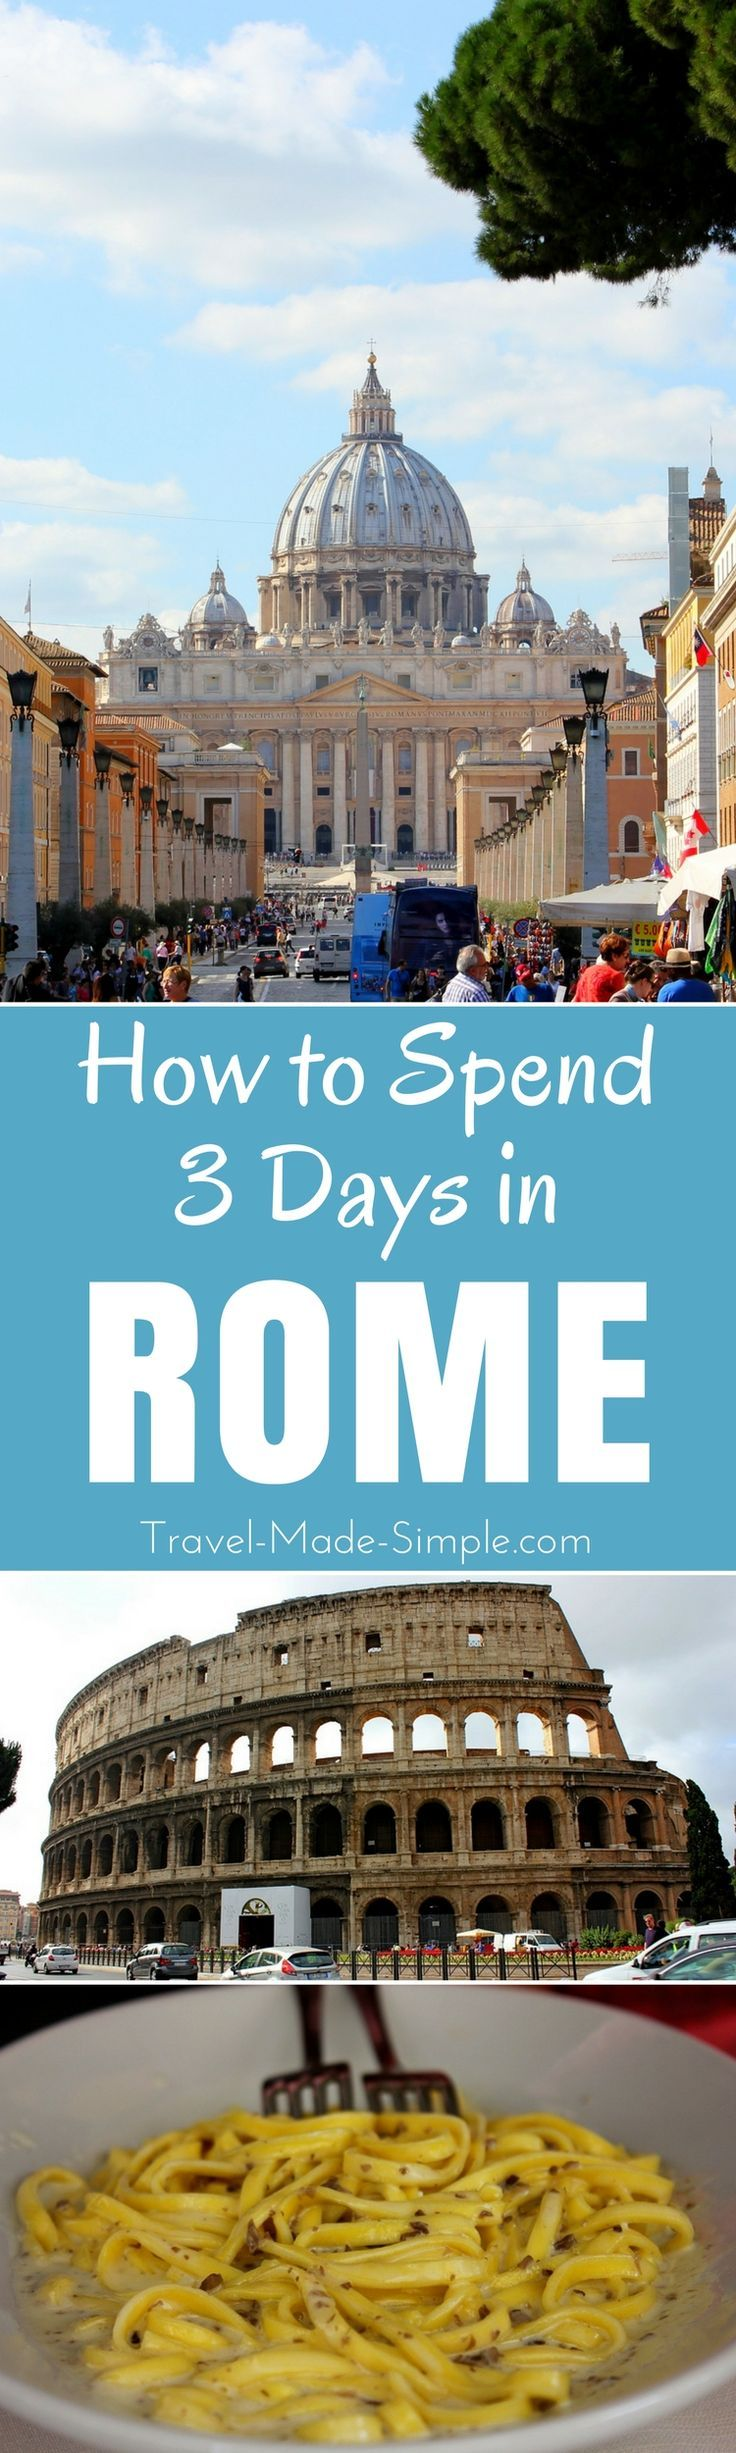 3 days in Rome isn't enough to see everything the city has to offer but it's enough to get a taste of the city. Here is an itinerary of things to do in Rome, Italy. | Rome itinerary | what to do in Rome, Italy | how to spend 3 days in Rome | Rome tourist attractions | travel in Rome, Italy